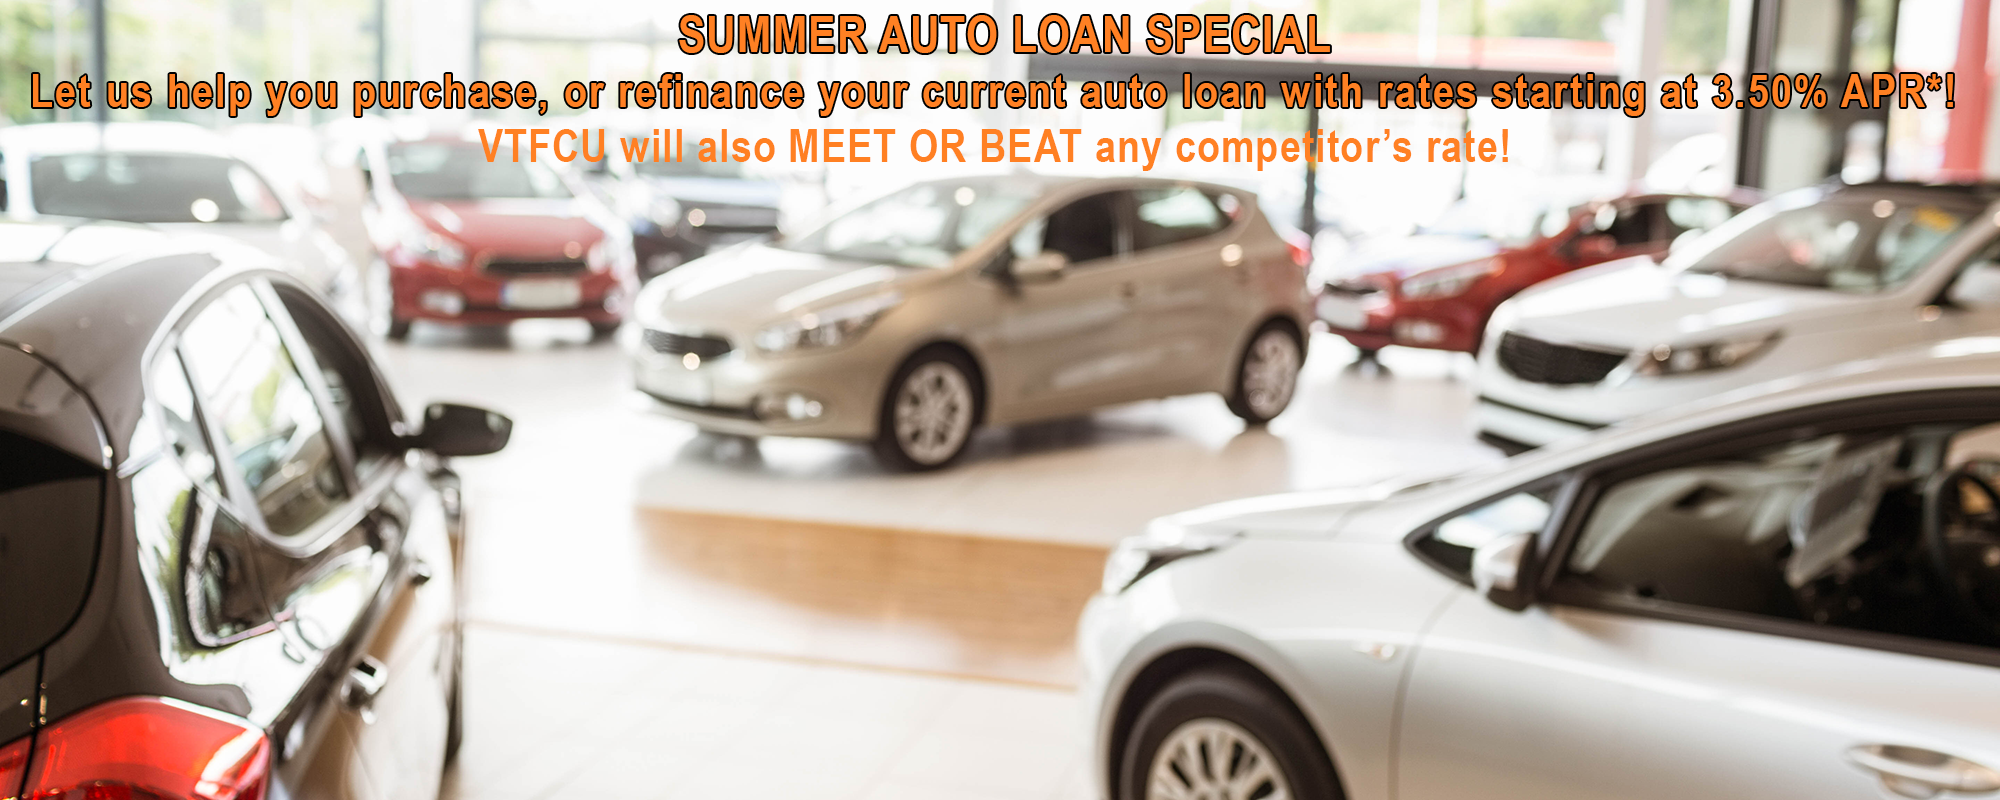 Summer Auto Loan Special